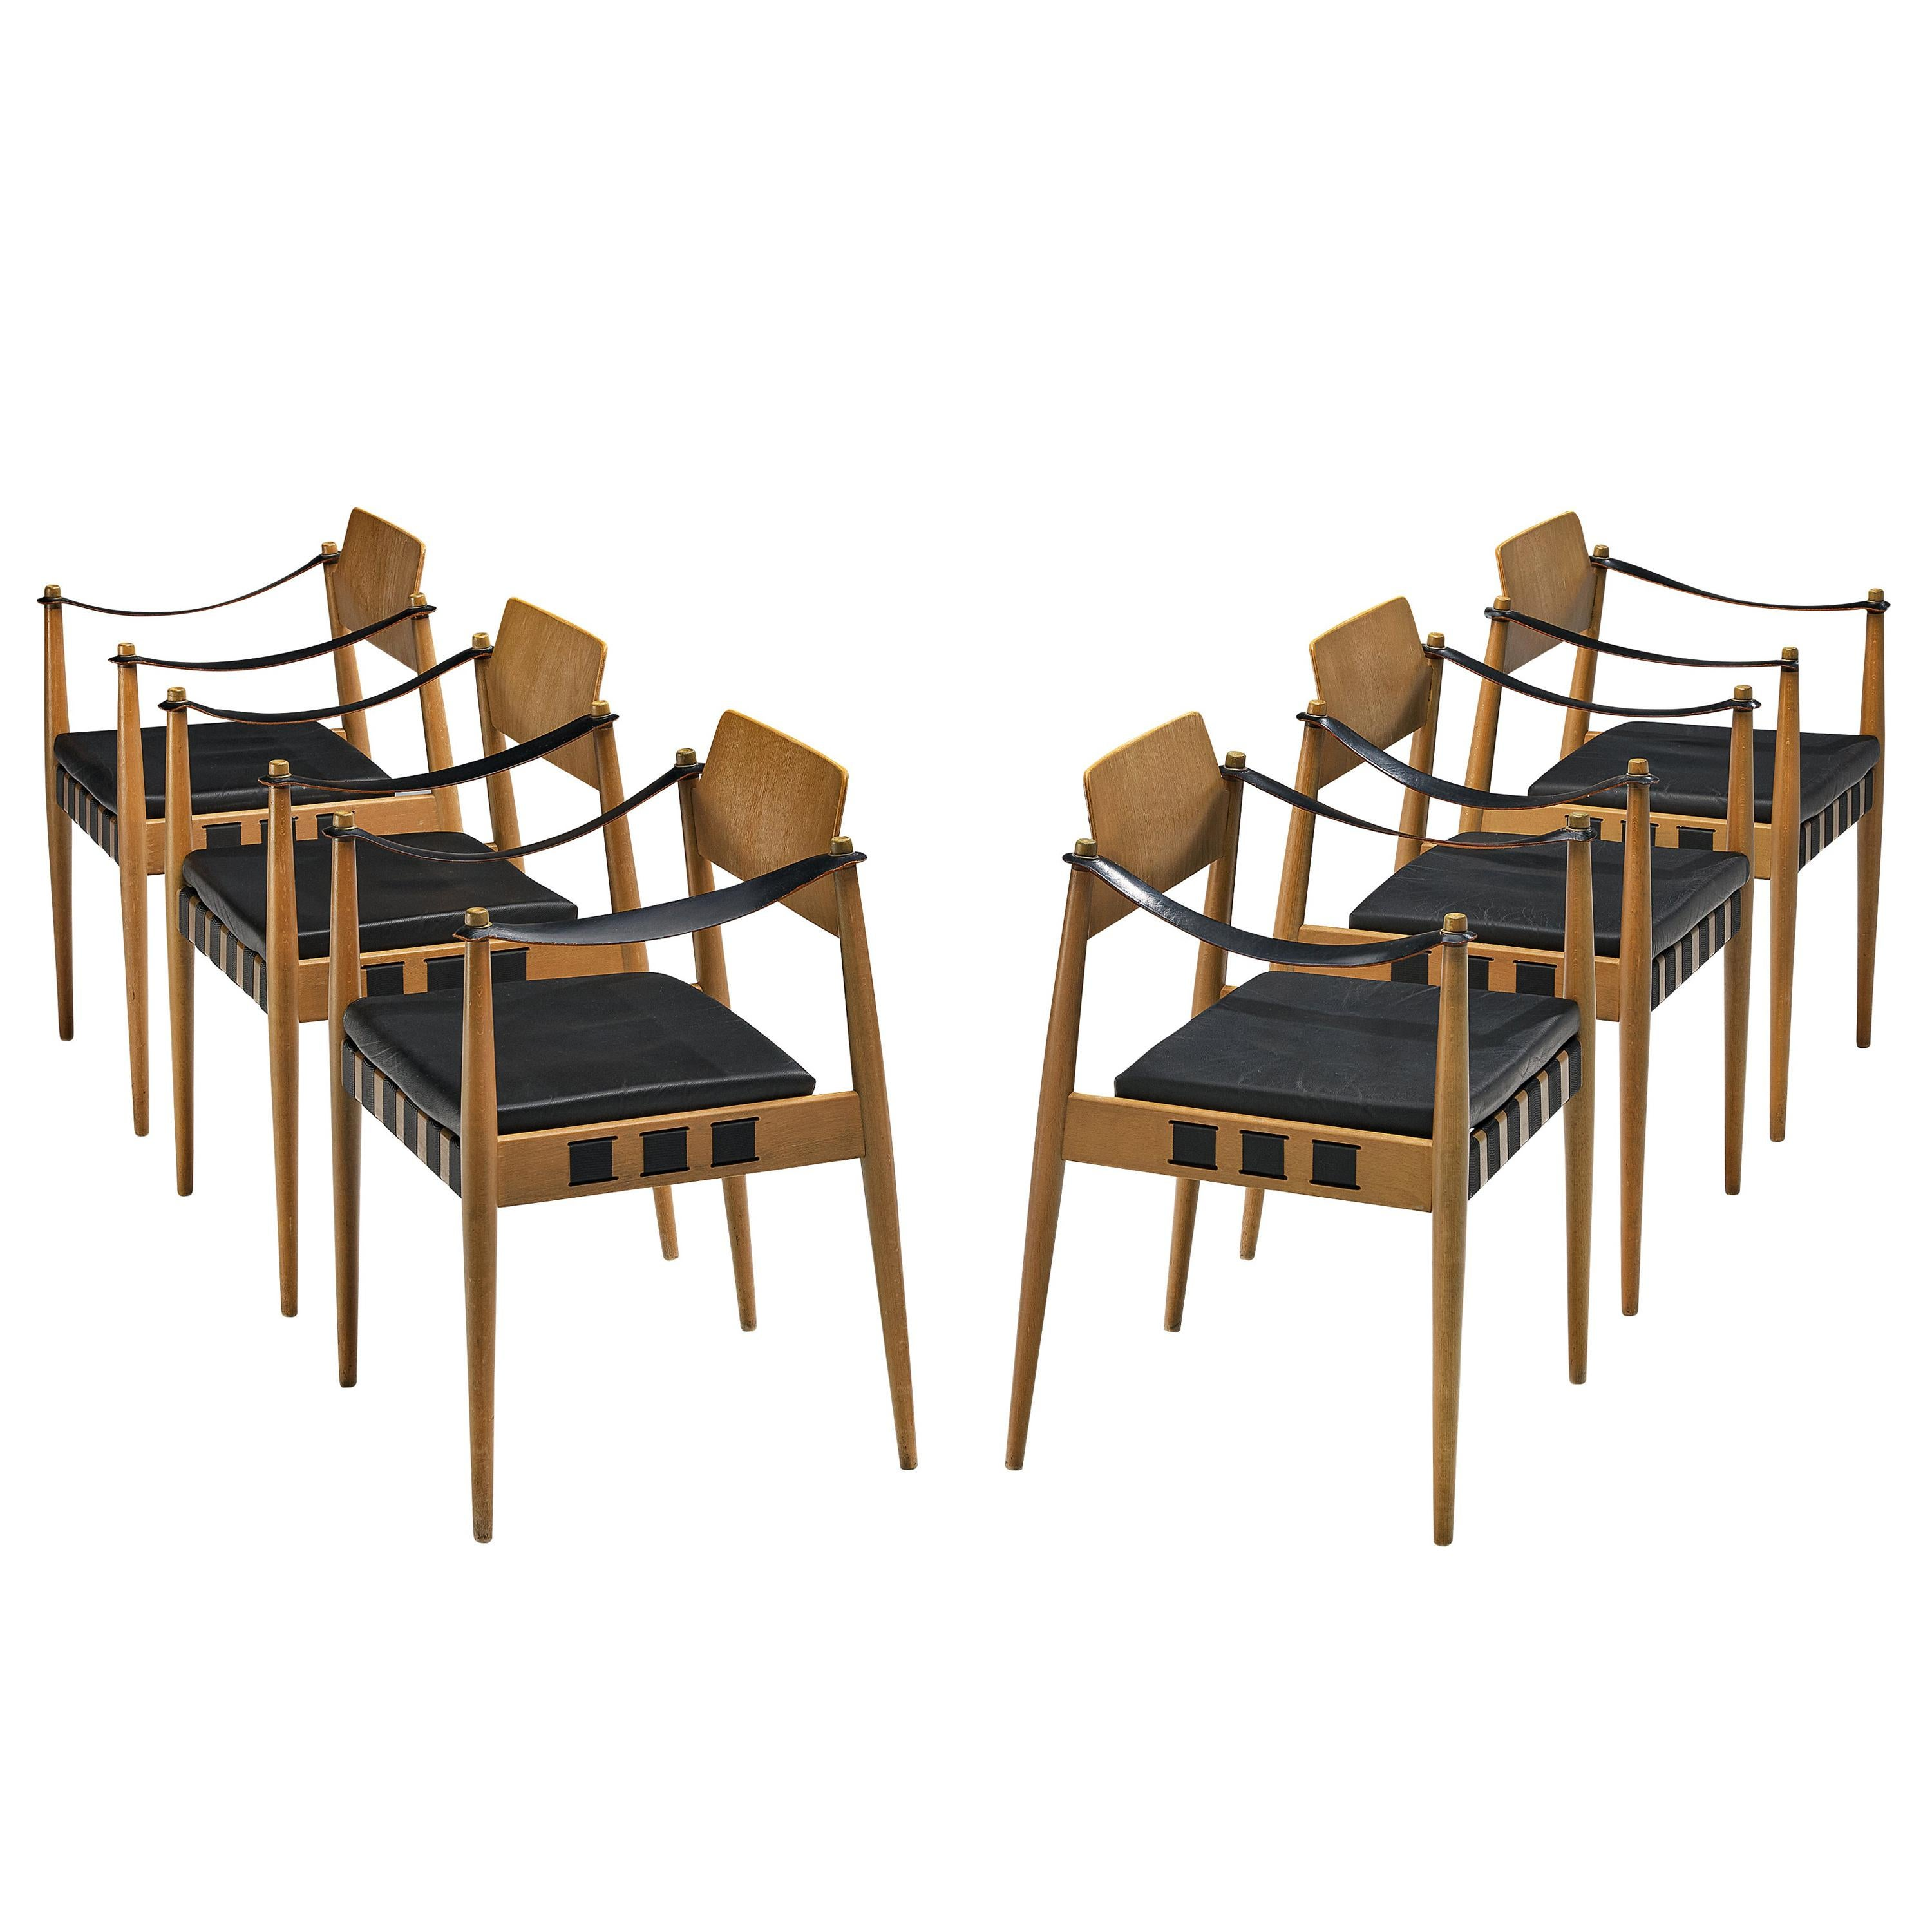 Egon Eiermann for Wilde + Spieth Armchairs in Beech and Leather